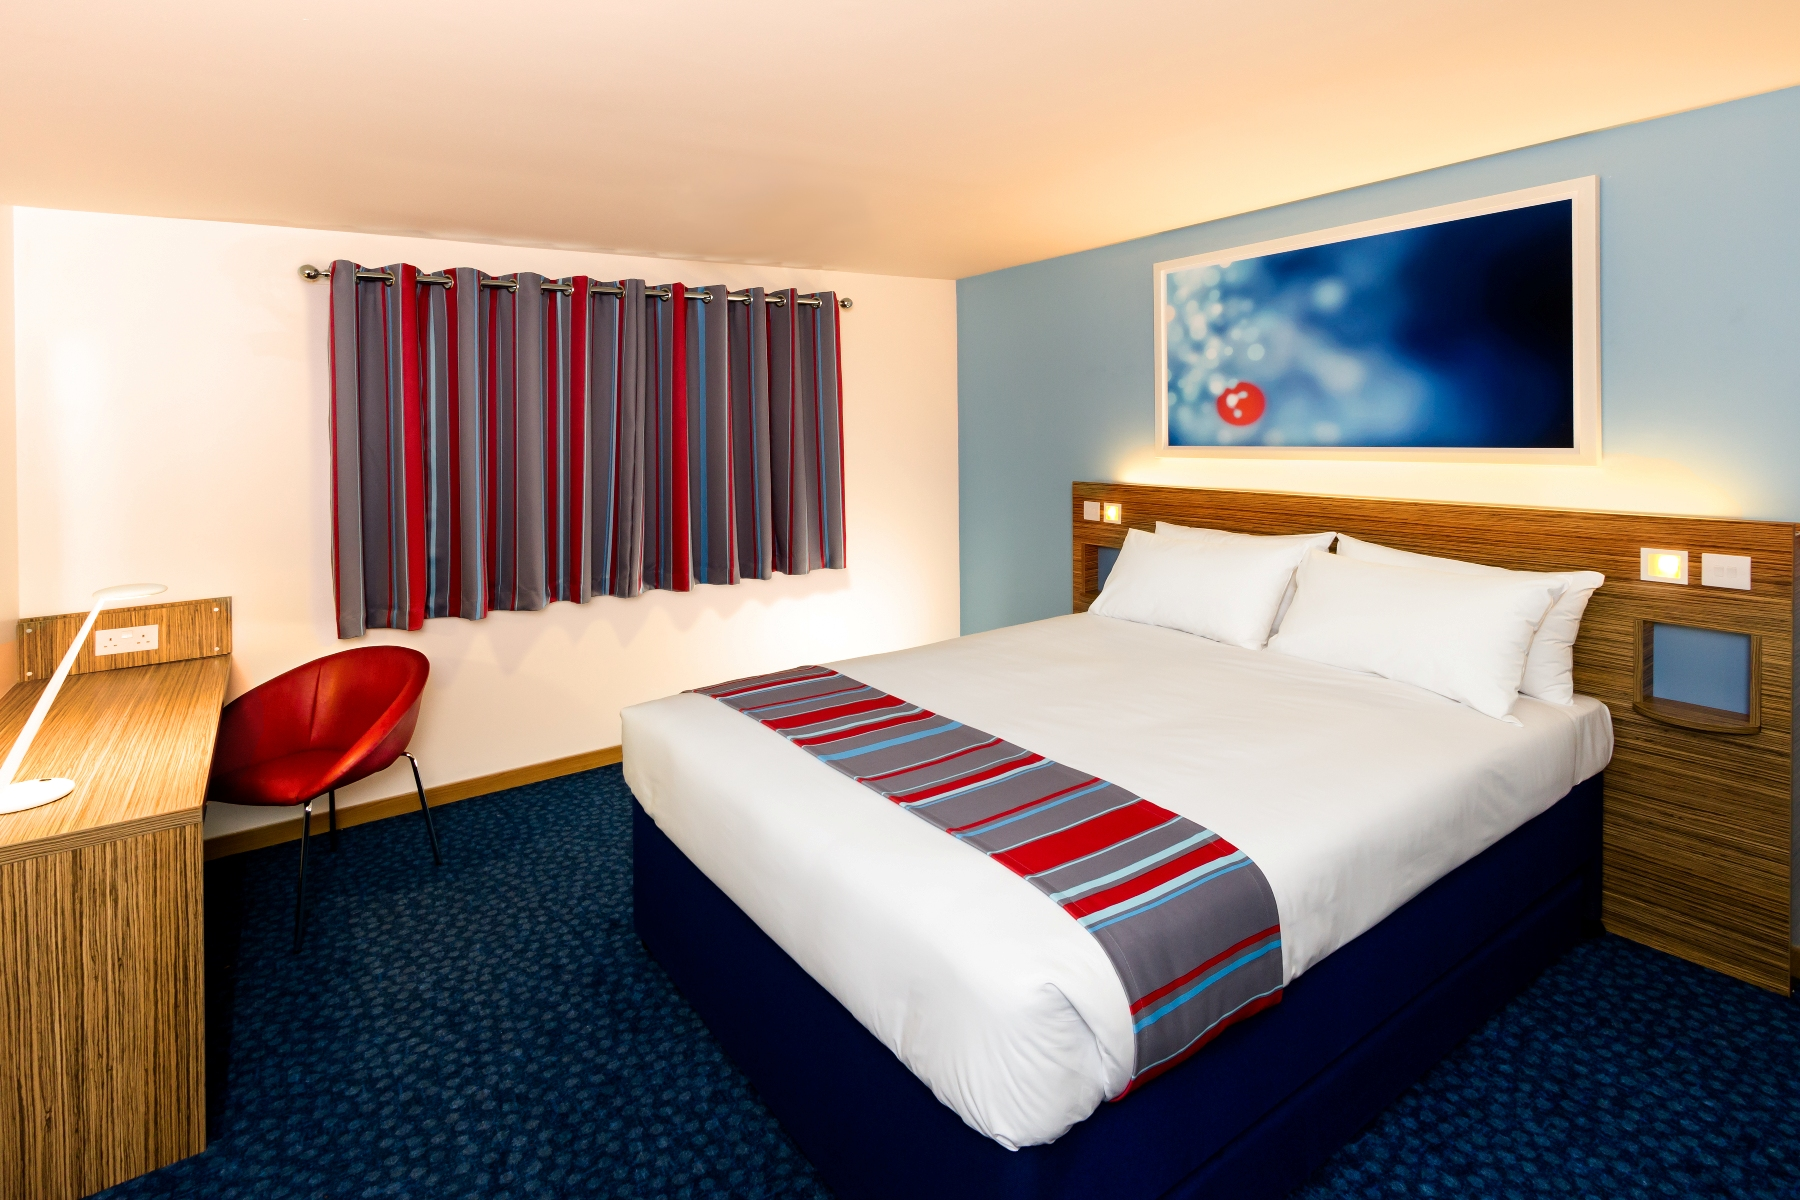 REVAMP: Bromsgrove's Travelodge hotel has undergone a major refurbishment, including new rooms. SP